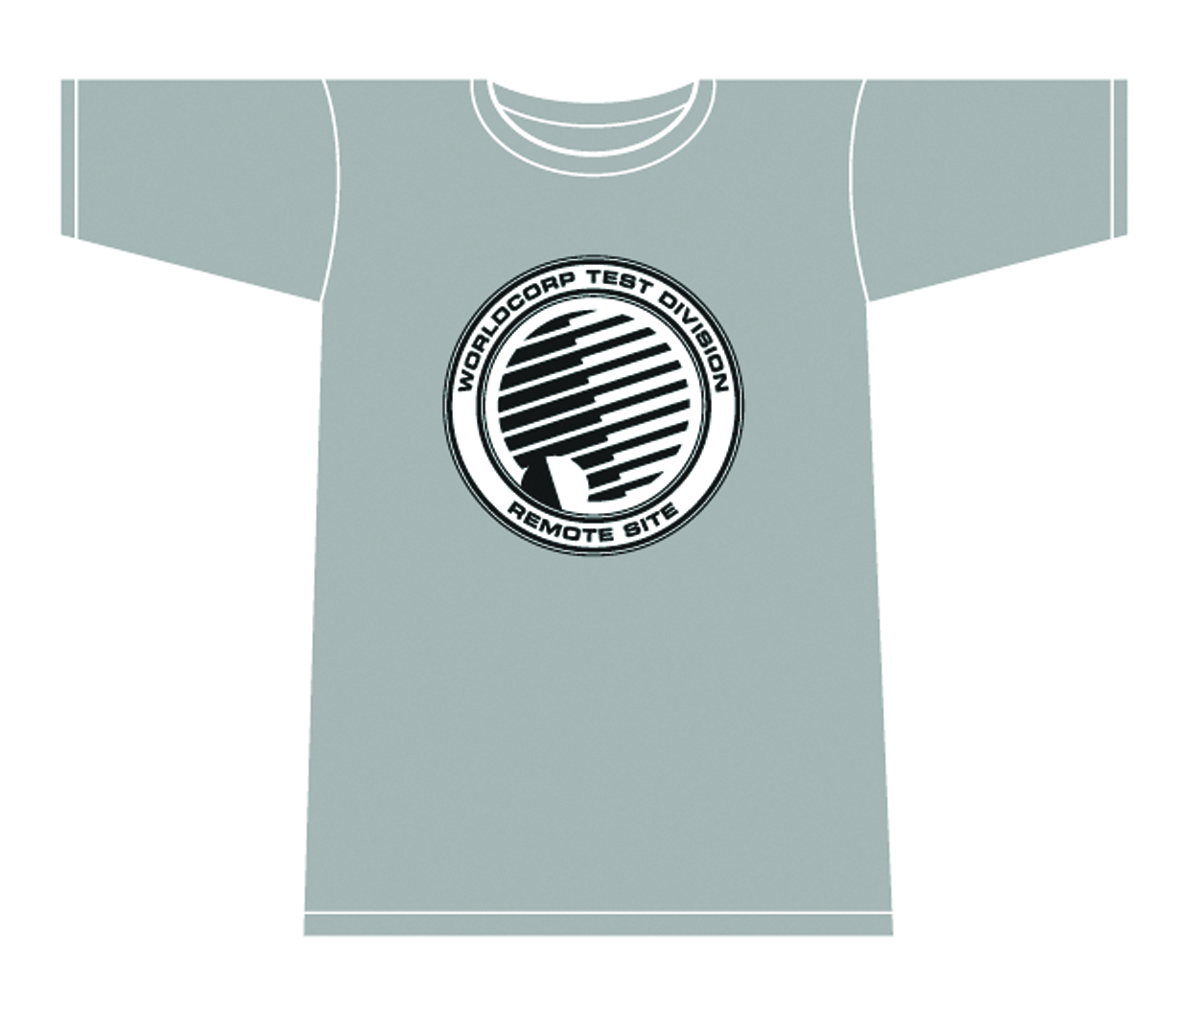 NOWHERE MEN WORLD CORP TEST DIVISION T/S GREY MENS MED